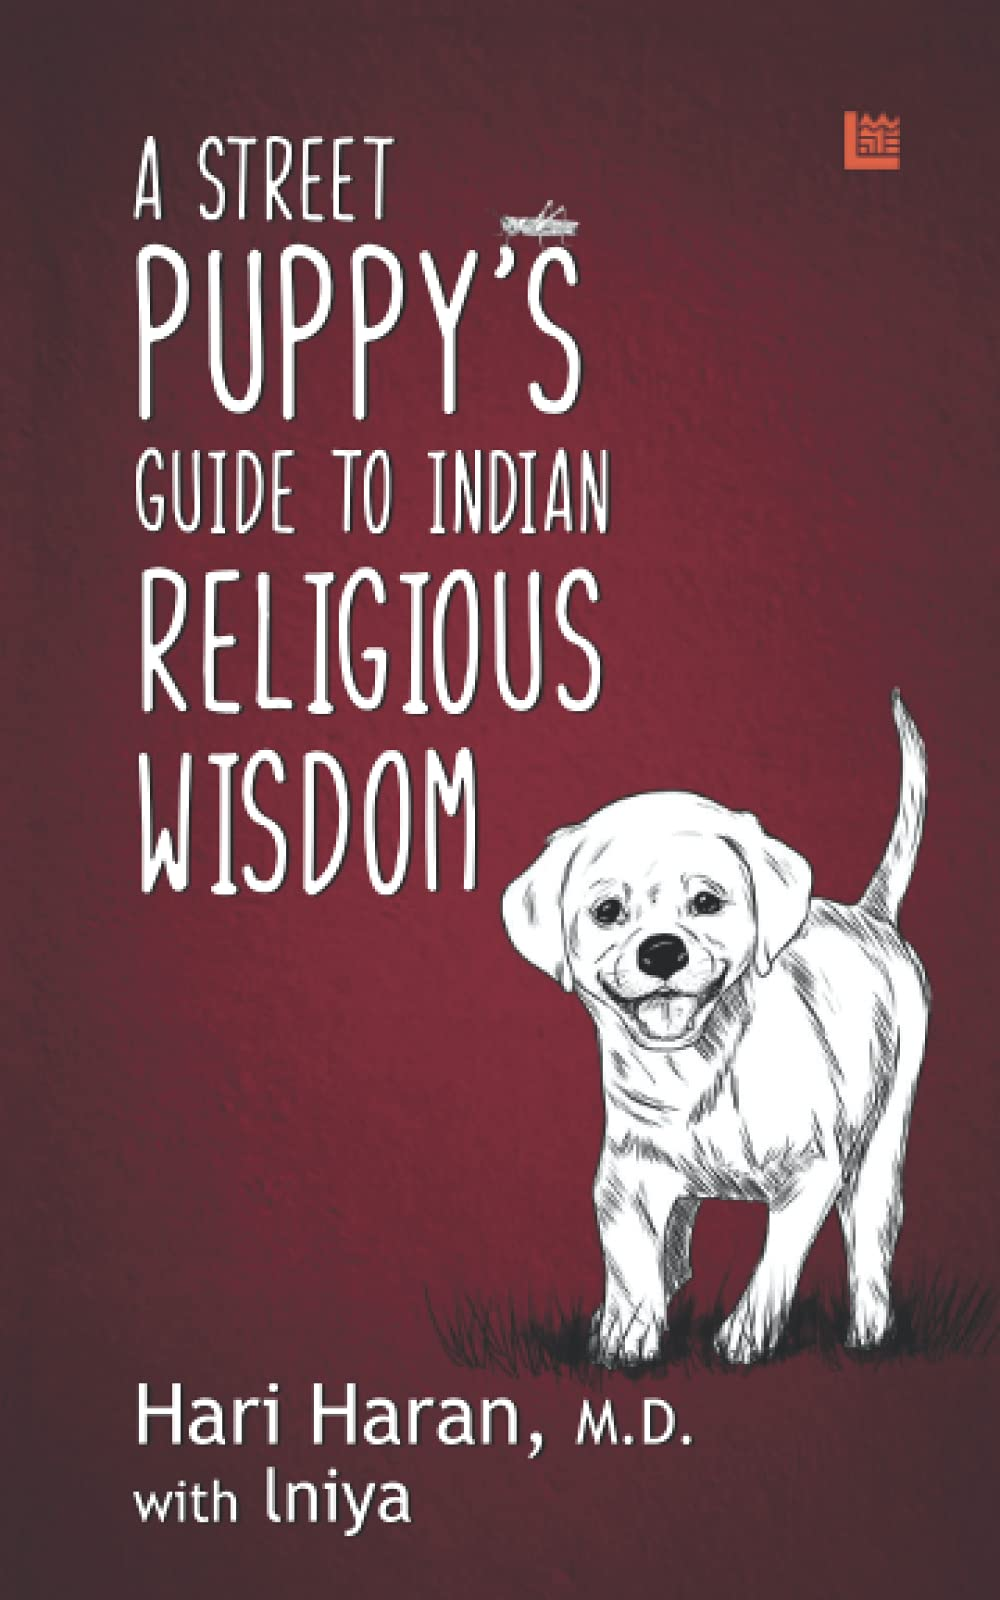 A Street Puppy's Guide to Indian Religious Wisdom by Dr Hari Haran